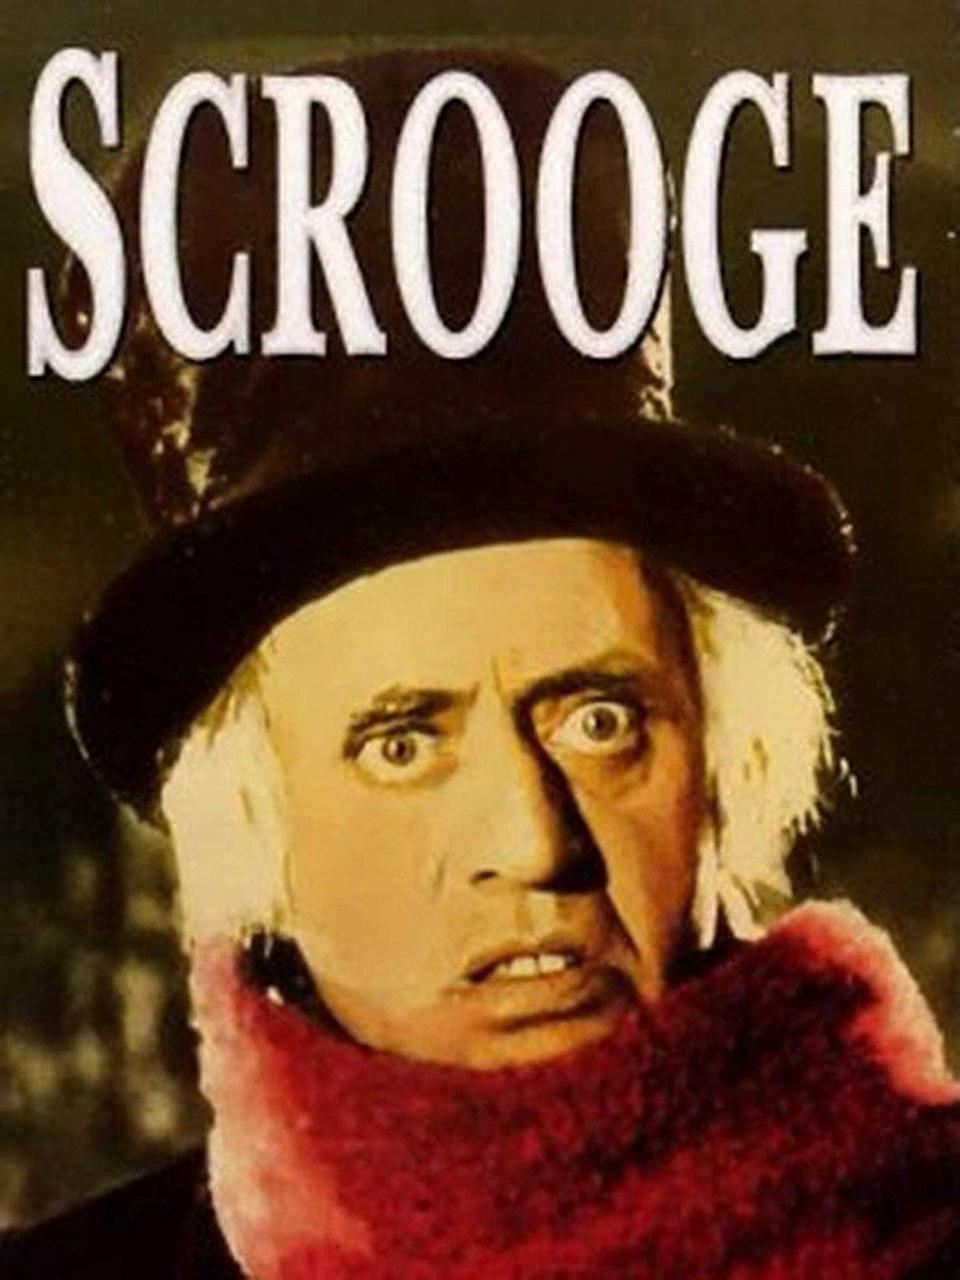 """<p>There are too many film adaptations of Charles Dickens's <em>A Christmas Carol</em> to count, but this 1951 version (originally called <em>Scrooge</em> when it was first released) is considered to be the <a href=""""http://www.nytimes.com/video/movies/1194835382819/critics-picks-a-christmas-carol.html"""" rel=""""nofollow noopener"""" target=""""_blank"""" data-ylk=""""slk:best version"""" class=""""link rapid-noclick-resp"""">best version</a>, according to <em>The New York Times</em> film critic A.O. Scott.</p><p><a class=""""link rapid-noclick-resp"""" href=""""https://www.amazon.com/Scrooge-Alastair-Sim/dp/B07K8XTQG1/?tag=syn-yahoo-20&ascsubtag=%5Bartid%7C10055.g.1315%5Bsrc%7Cyahoo-us"""" rel=""""nofollow noopener"""" target=""""_blank"""" data-ylk=""""slk:WATCH NOW"""">WATCH NOW</a></p>"""